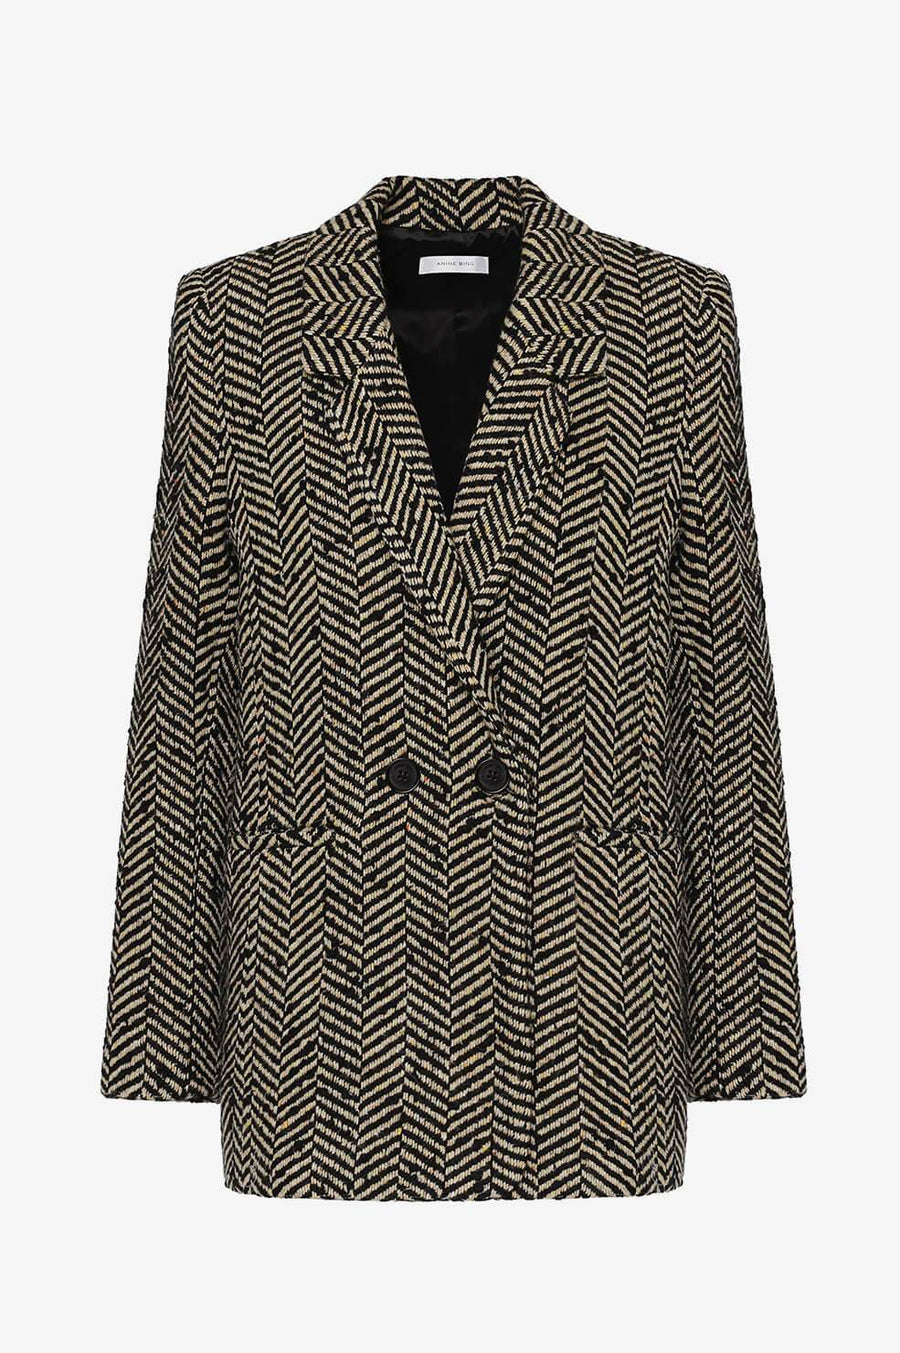 Fishbone Blazer - Cream and Black - Pavilion